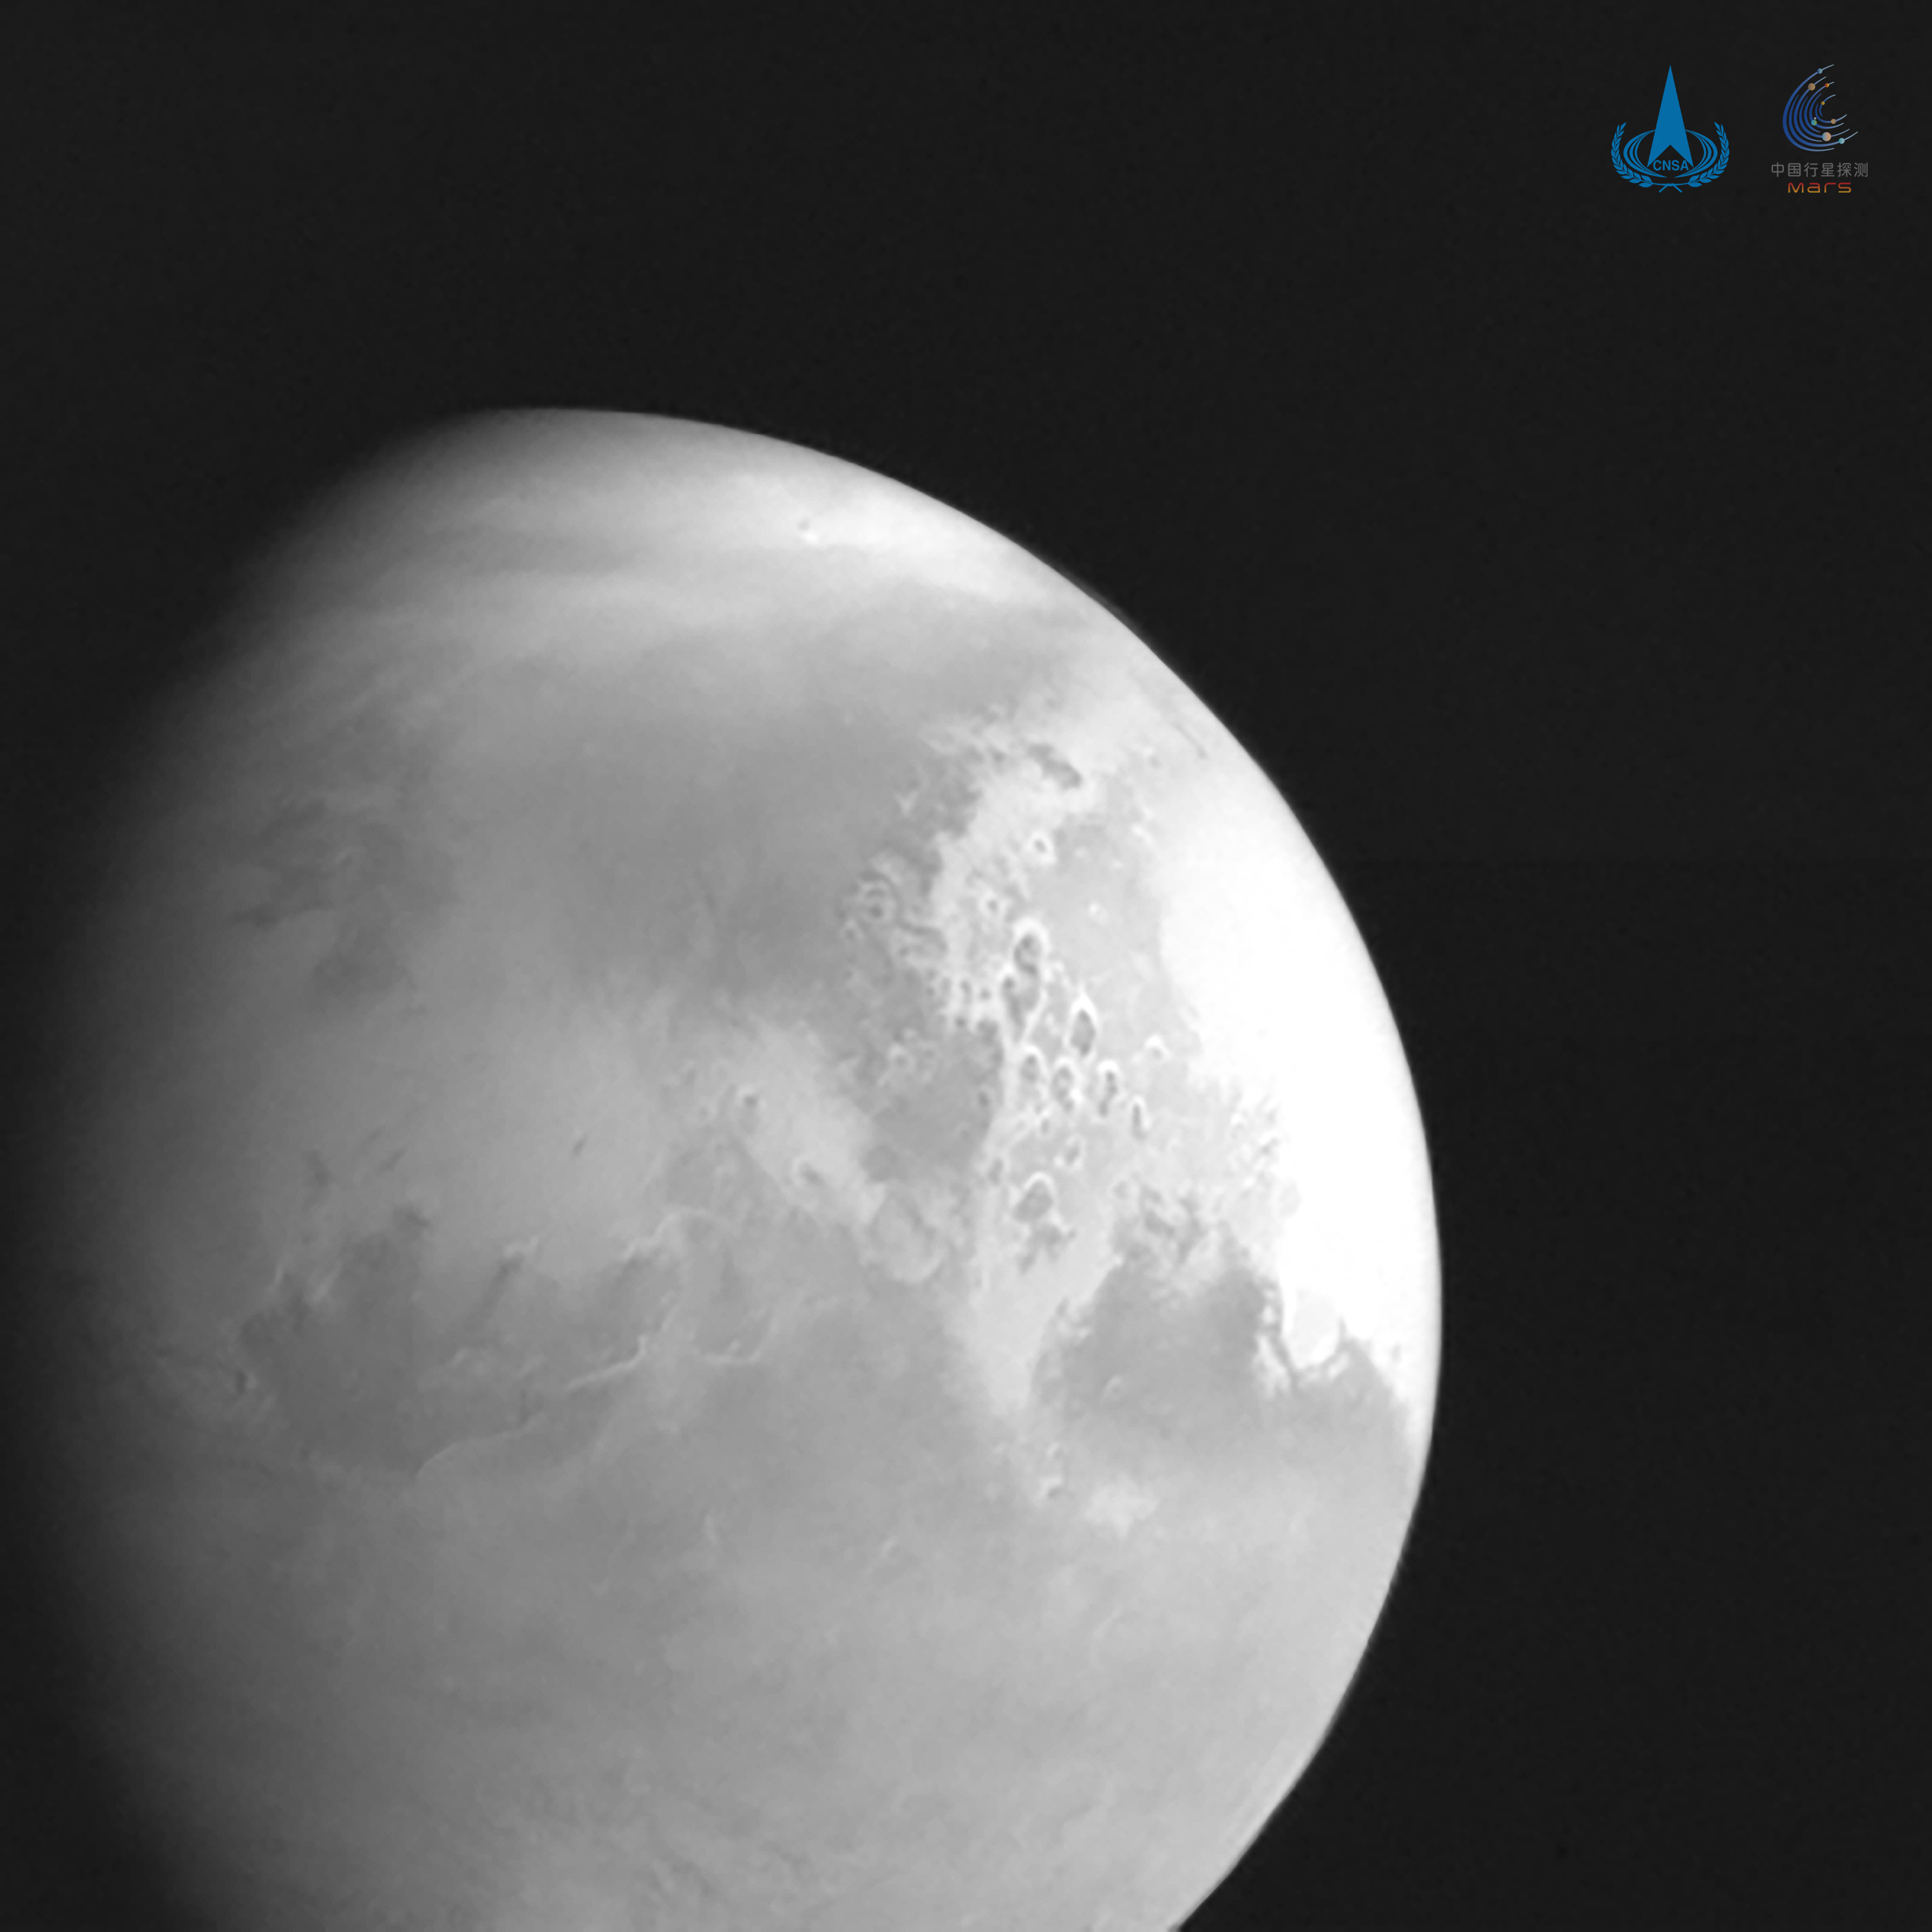 Mars ahead! China's Tianwen-1 mission snaps 1st photo of Red Planet.